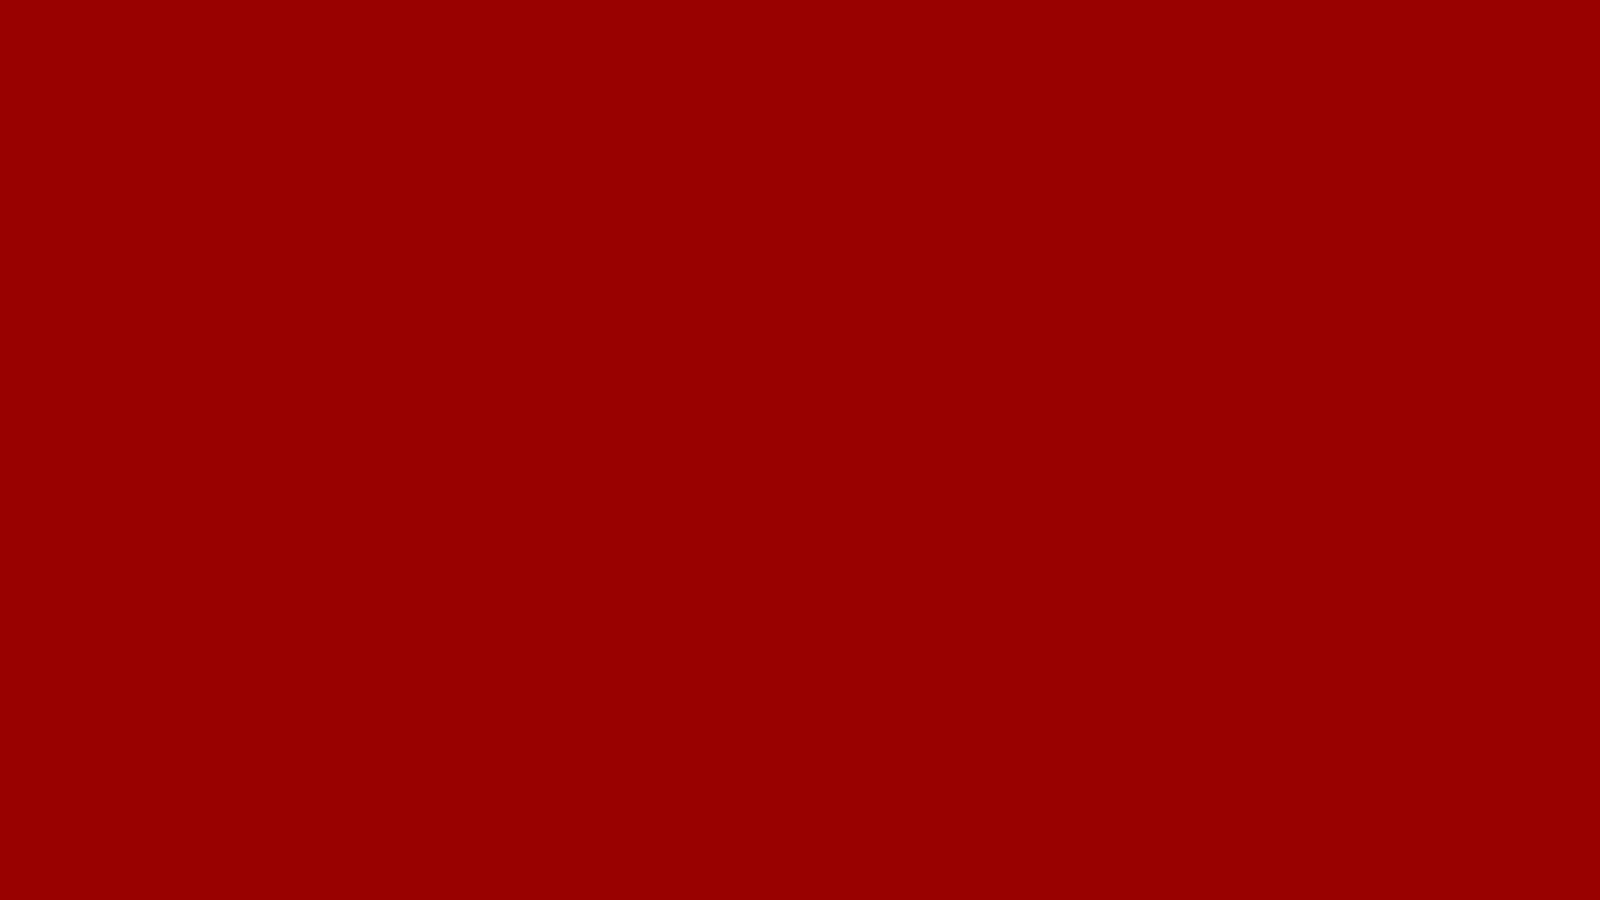 1600x900 USC Cardinal Solid Color Background